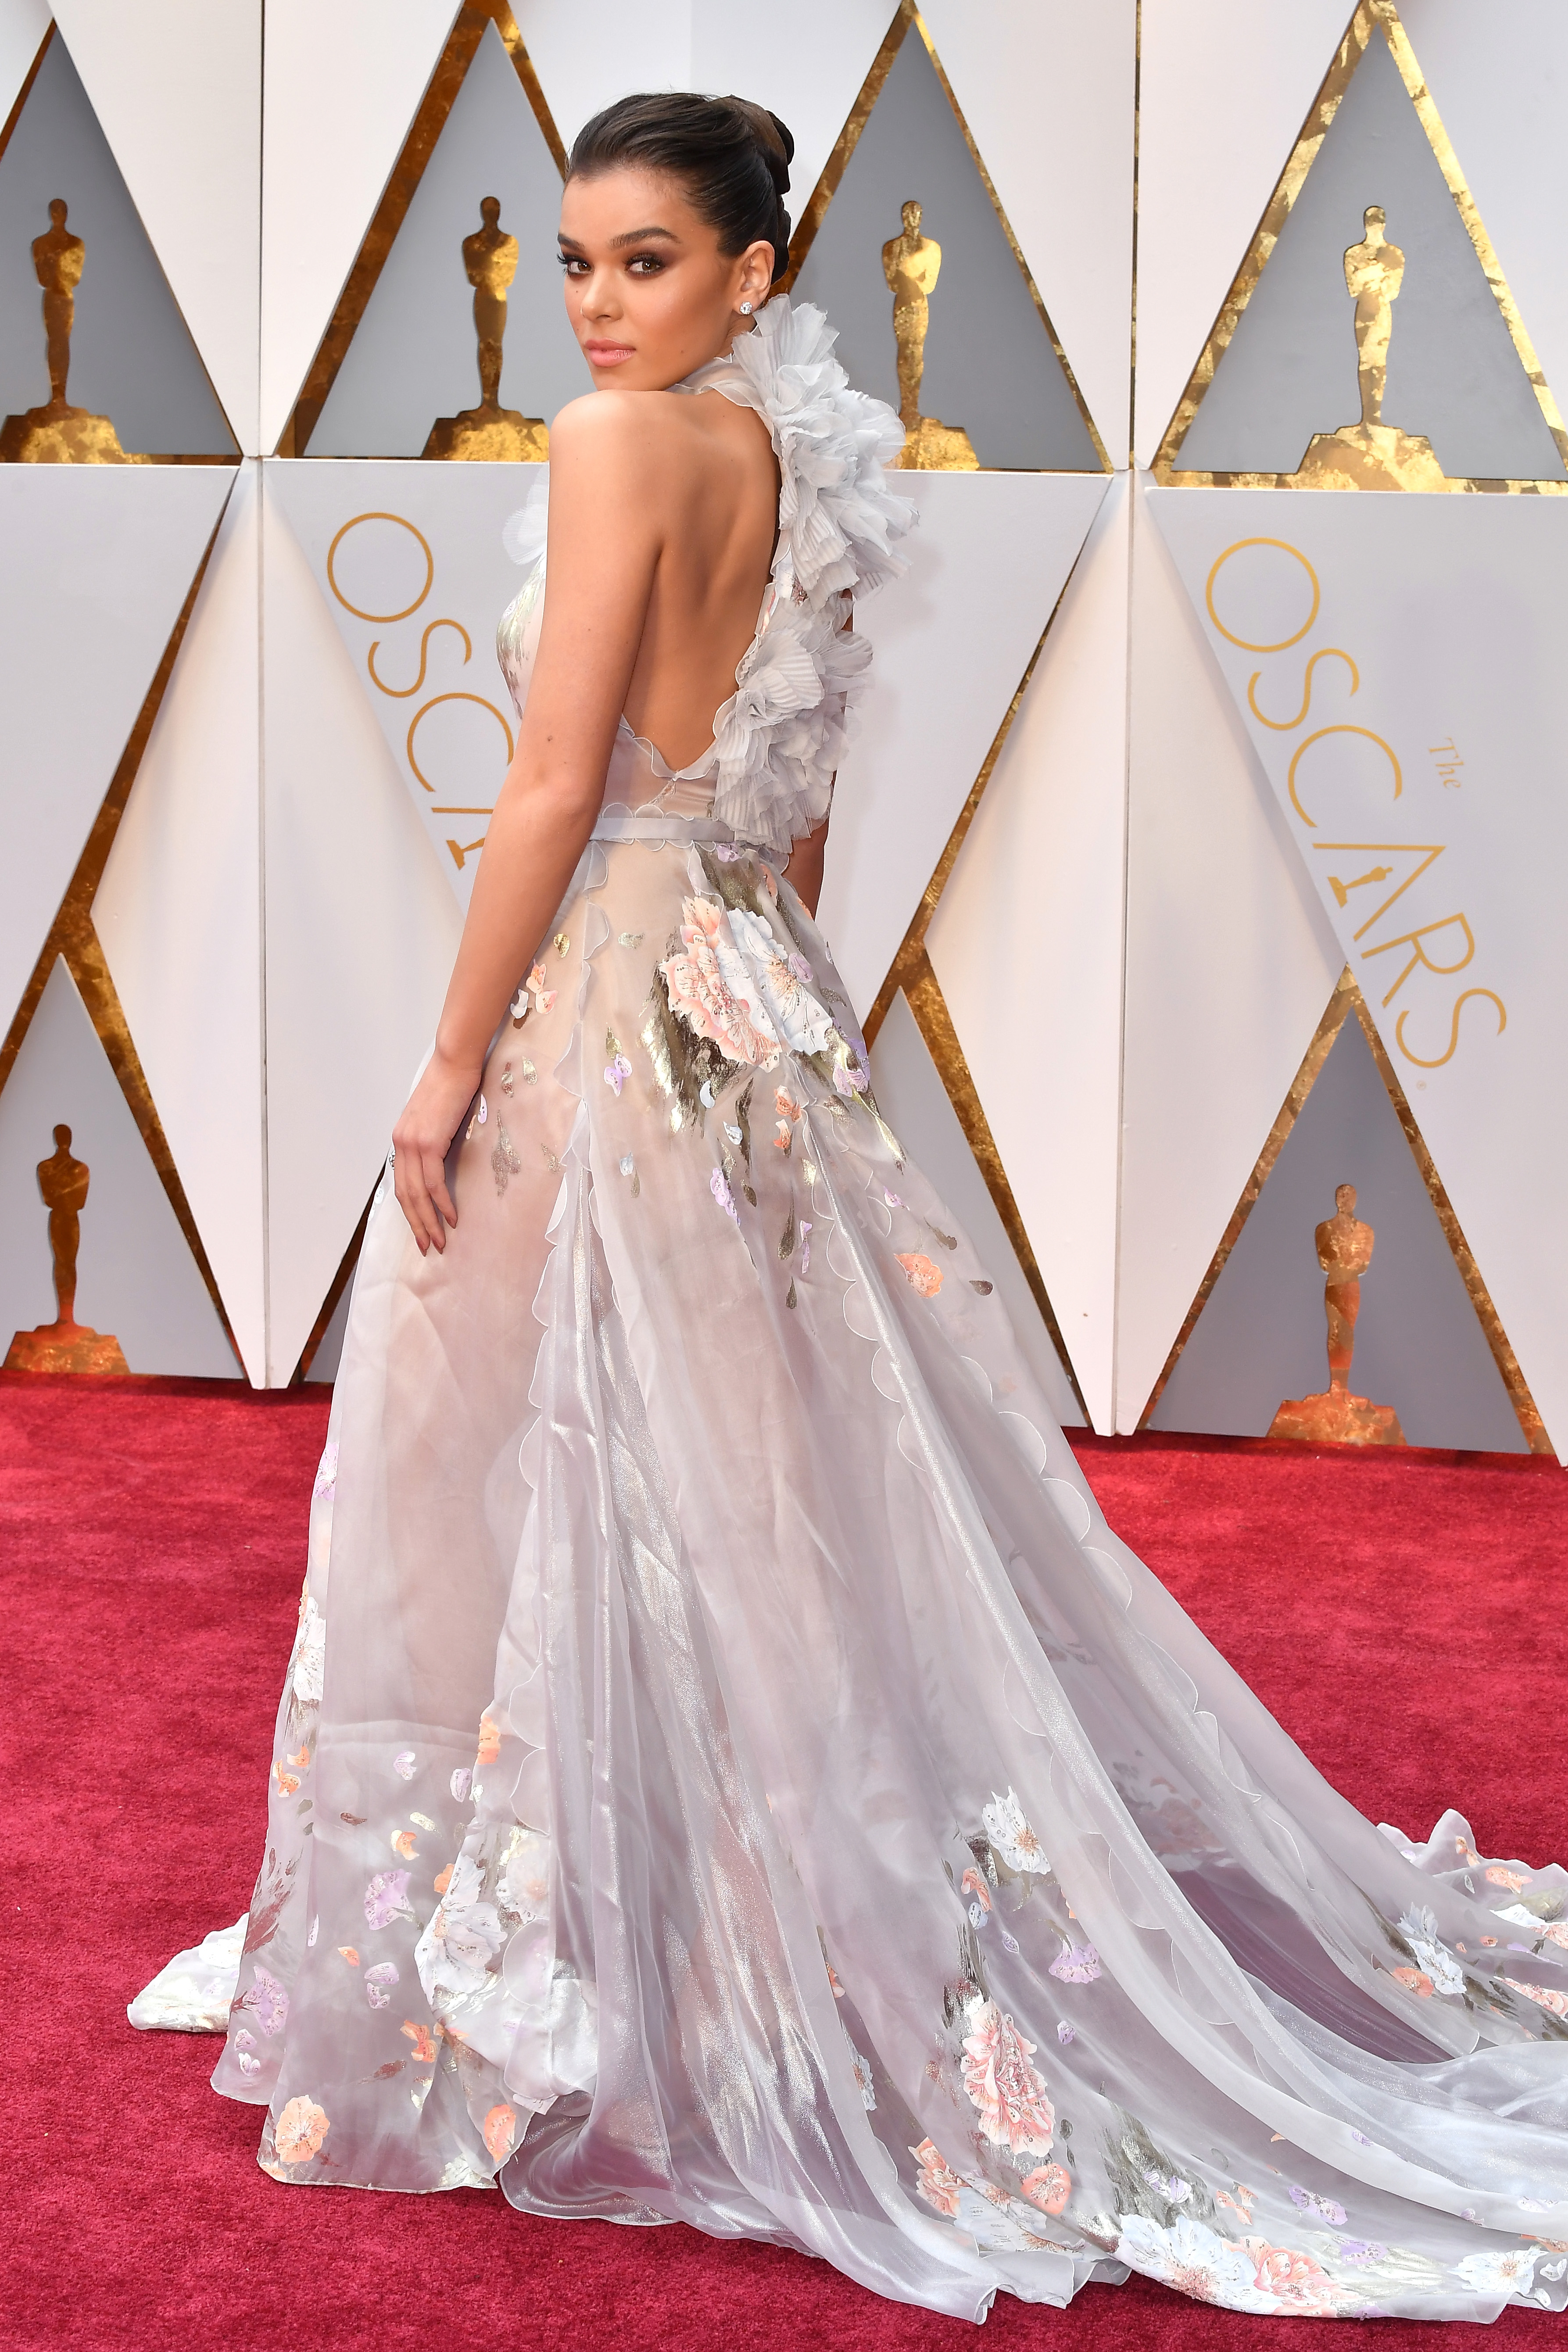 Hailee Steinfeld Looks Like She Just Stepped Out Of A Real